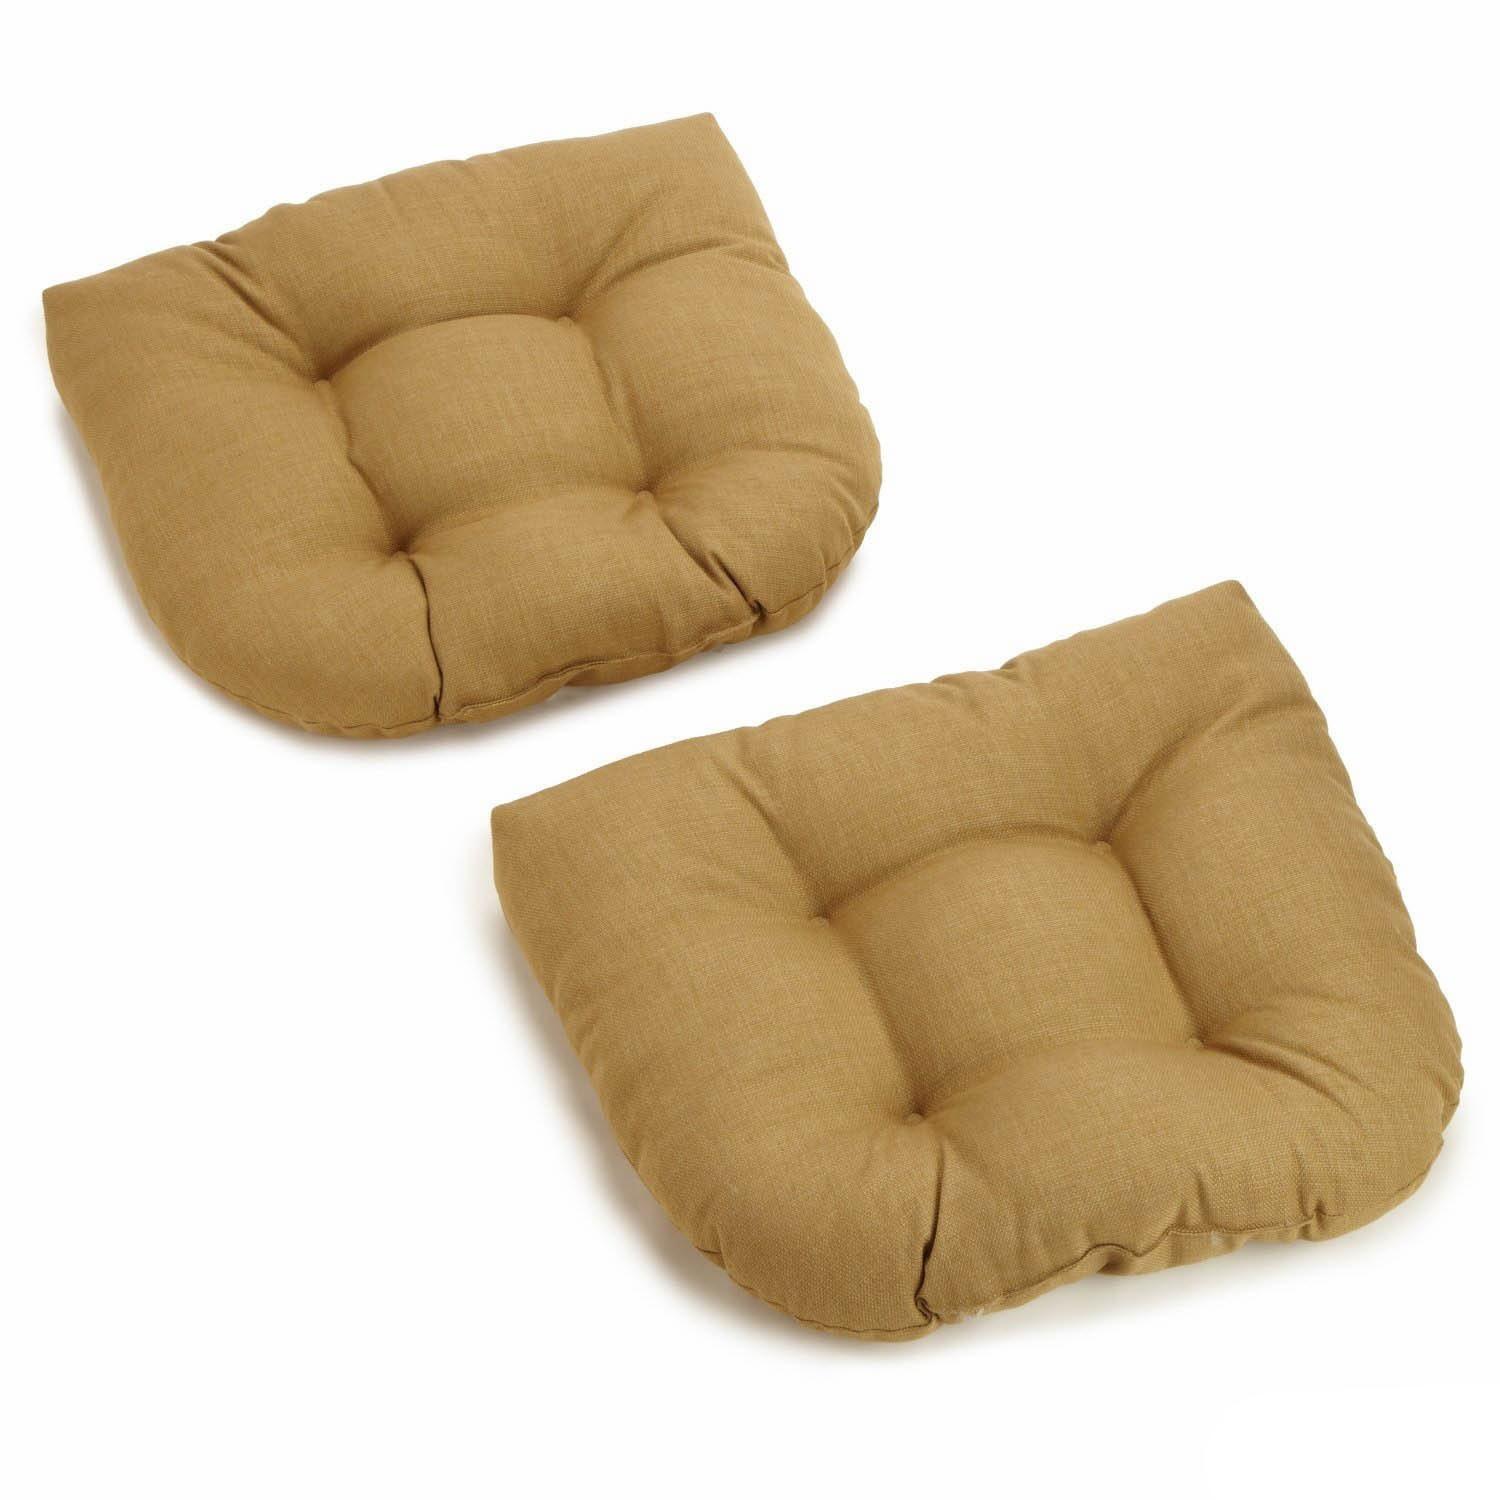 Ordinaire Shop All Weather UV Resistant U Shaped Outdoor Chair Cushions (Set Of 2)    On Sale   Free Shipping Today   Overstock.com   5743332